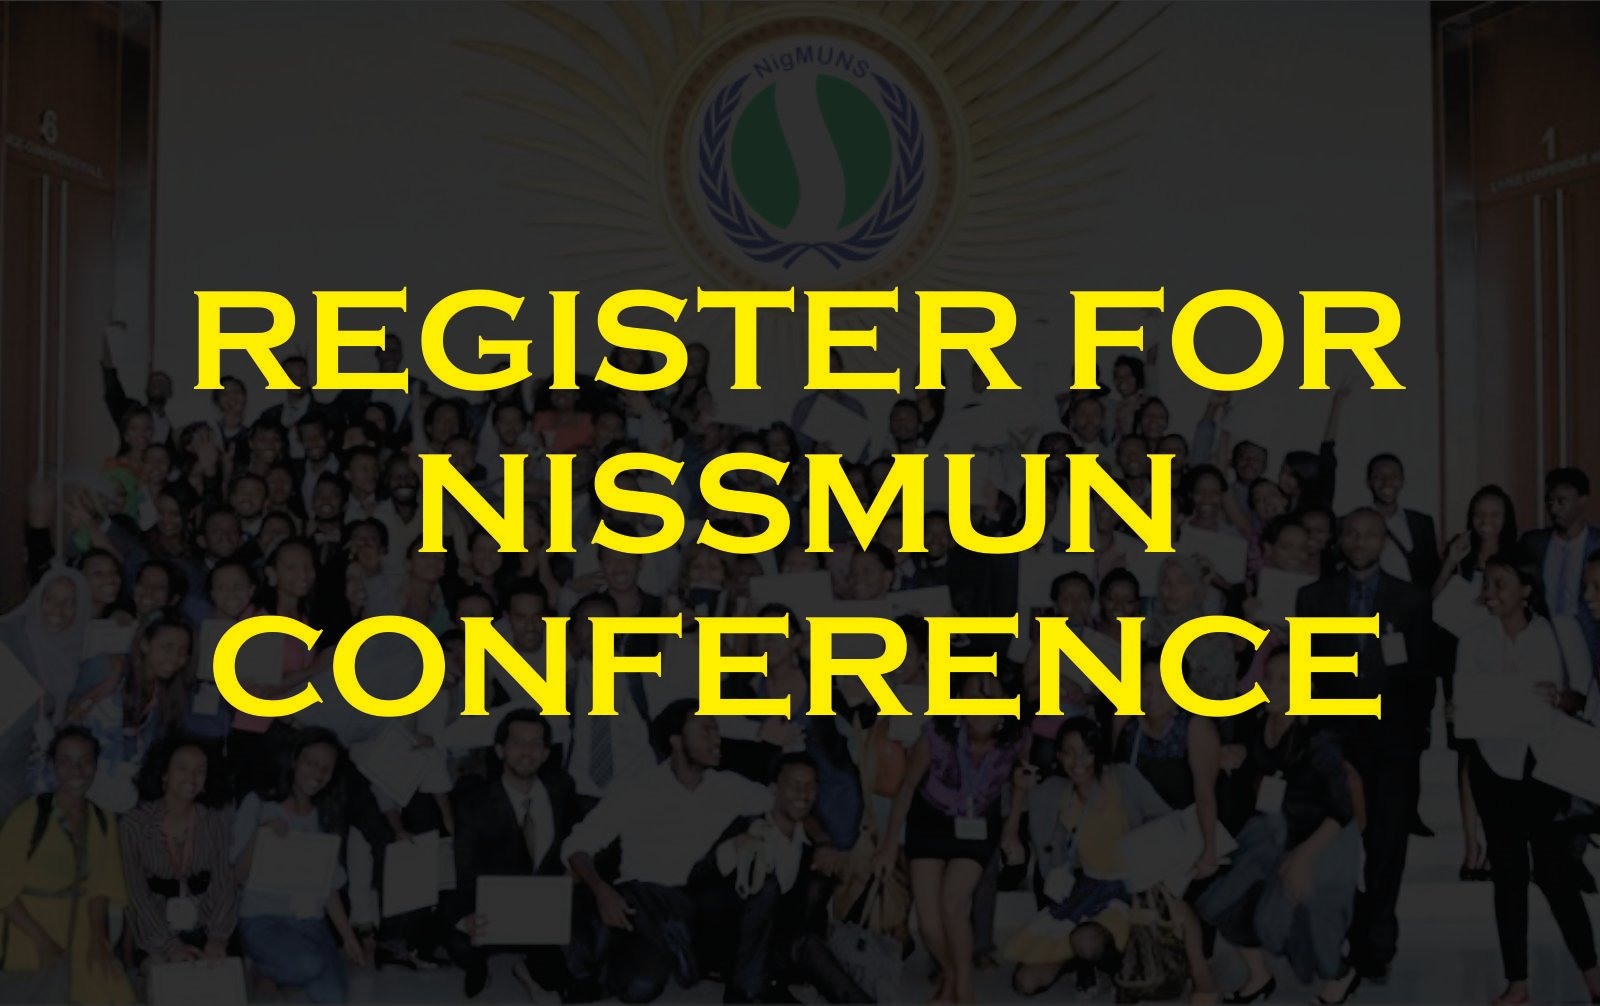 REGISTER FOR NISSMUN CONFERENCE